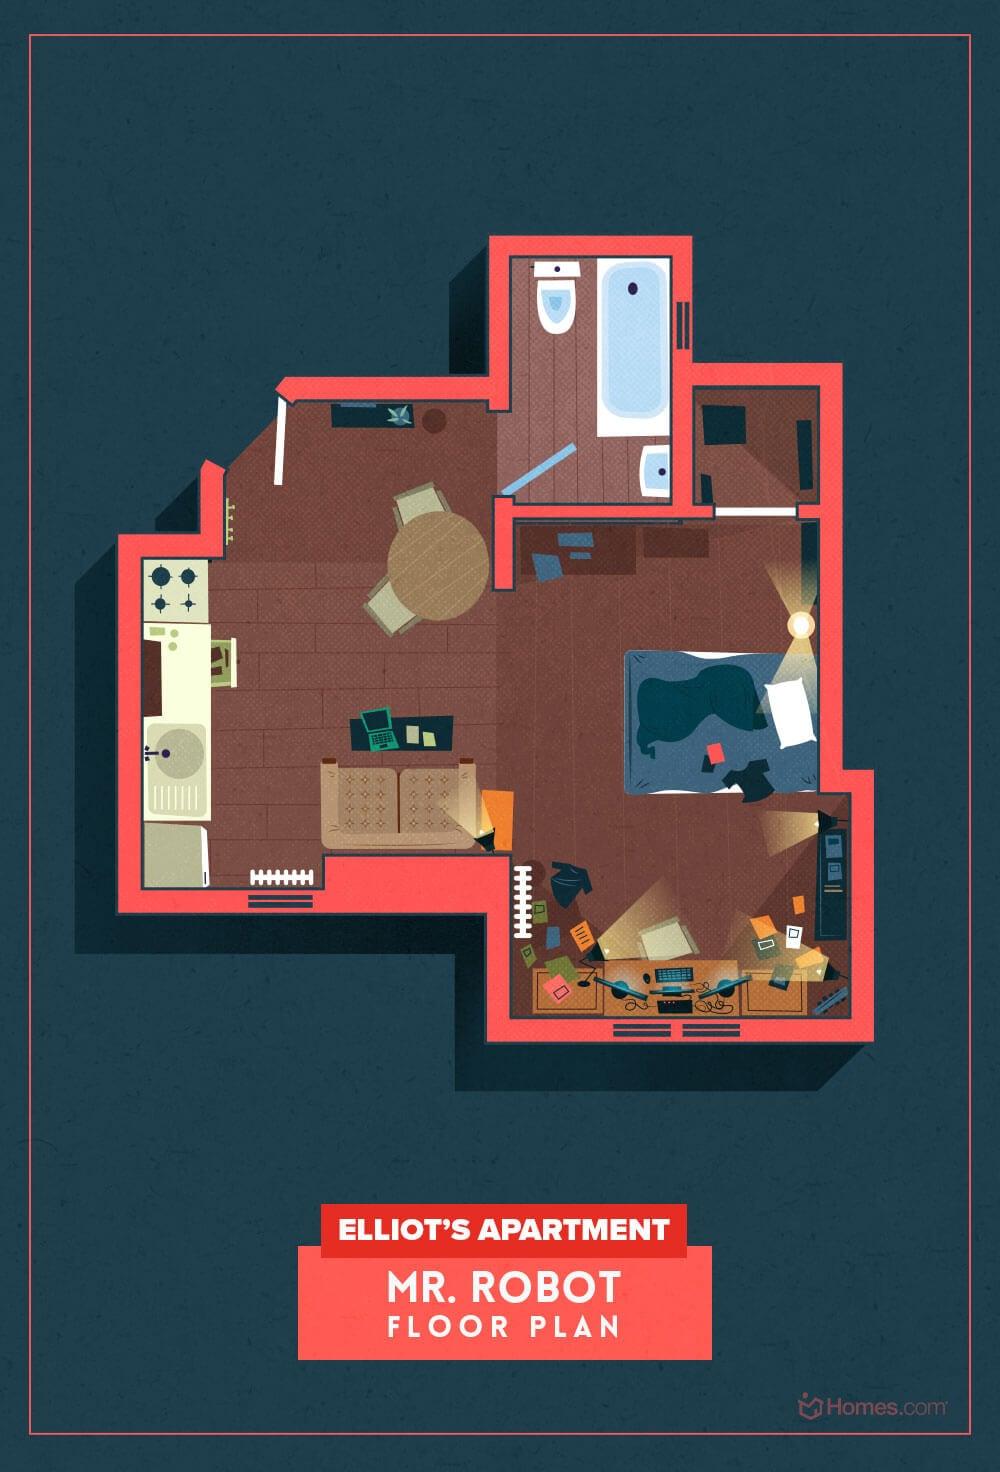 home-floor-plans-illustrations-5